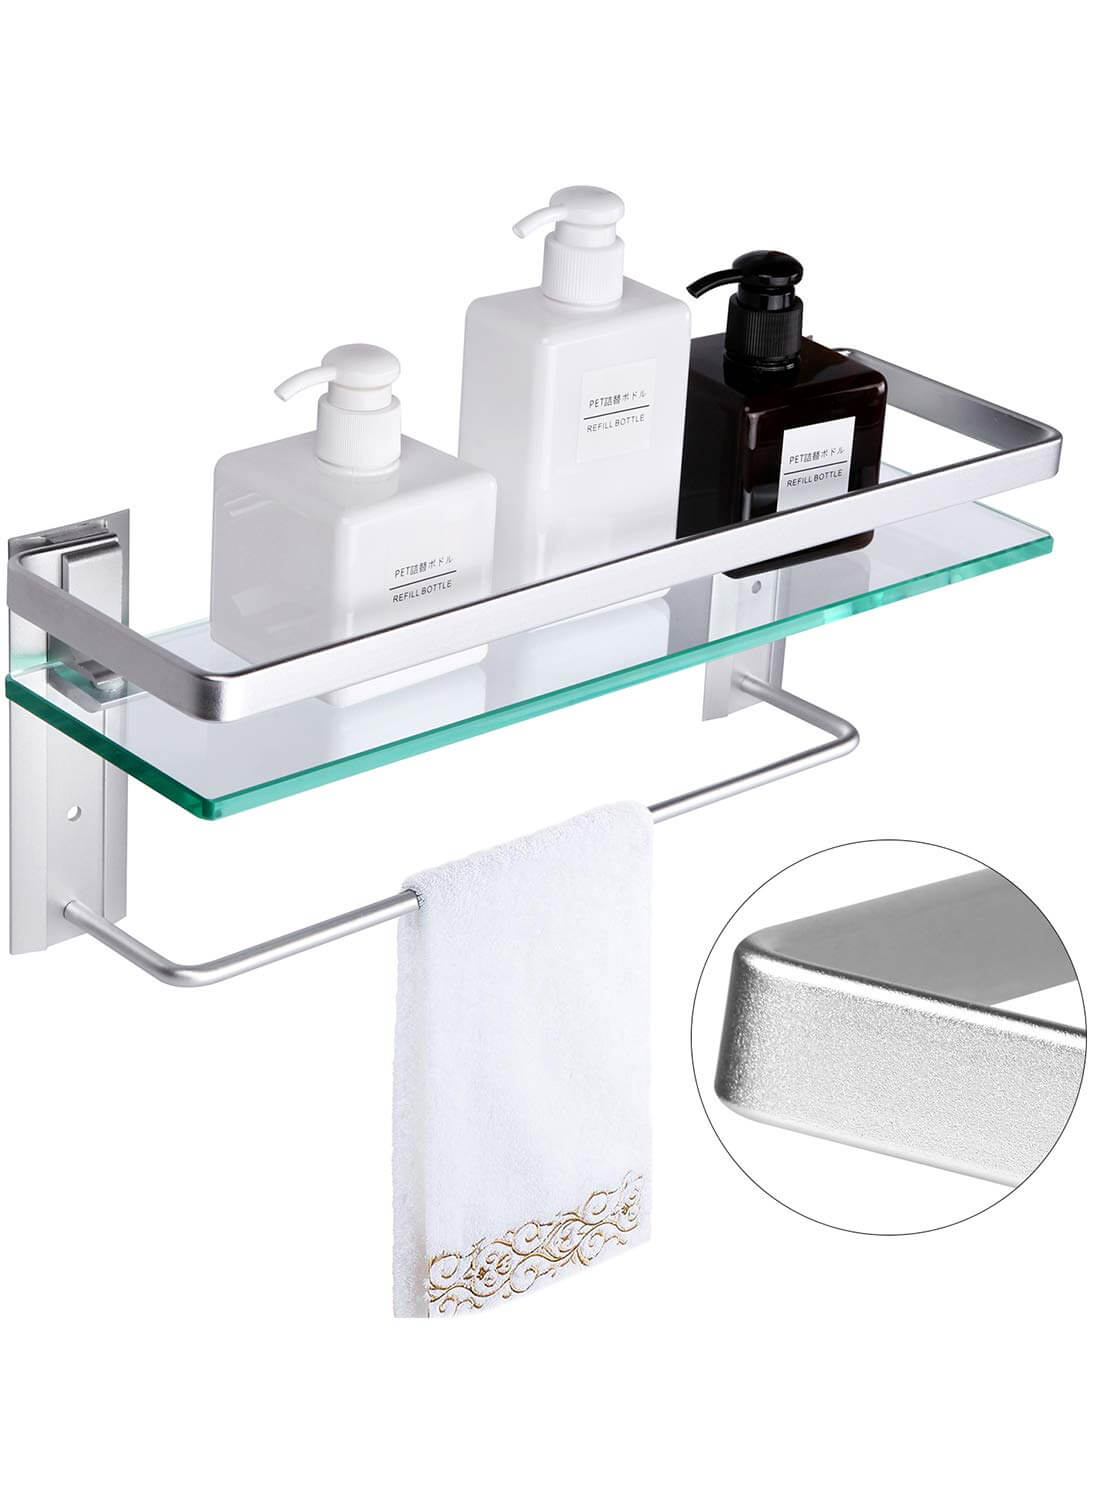 Vdomus Tempered Glass Brushed silver Bathroom Shelf with Towel Bar Wall Mounted